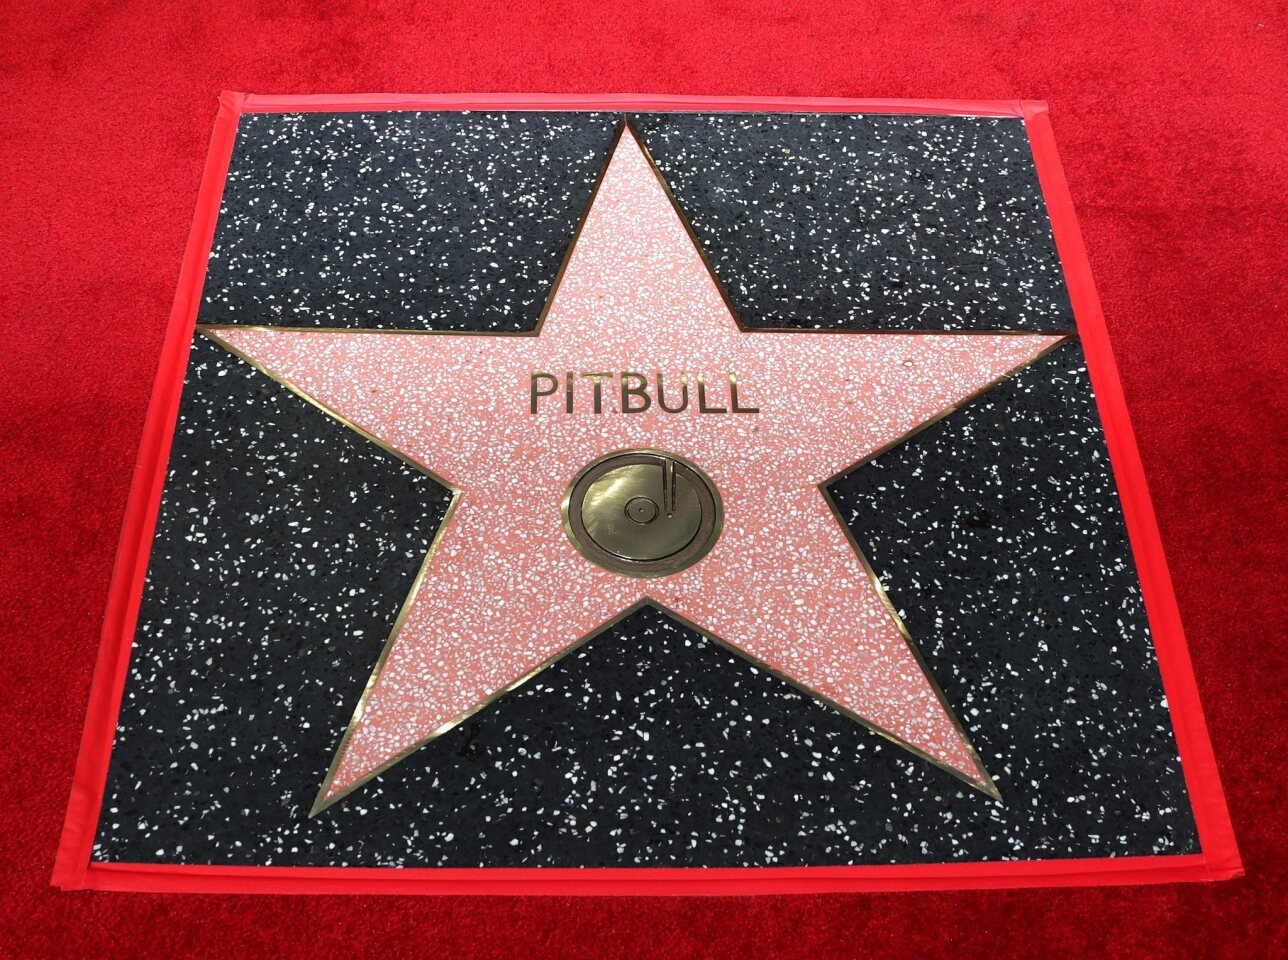 MAN06. Hollywood (United States), 15/07/2016.- The star for Cuban-American singer Pitbull is pictured after a ceremony honoring him on the Hollywood Walk of Fame, in Hollywood, California, USA, 15 July 2016. Pitbull received the 2,584th star in the Recording category. (Estados Unidos) EFE/EPA/MIKE NELSON ** Usable by HOY and SD Only **